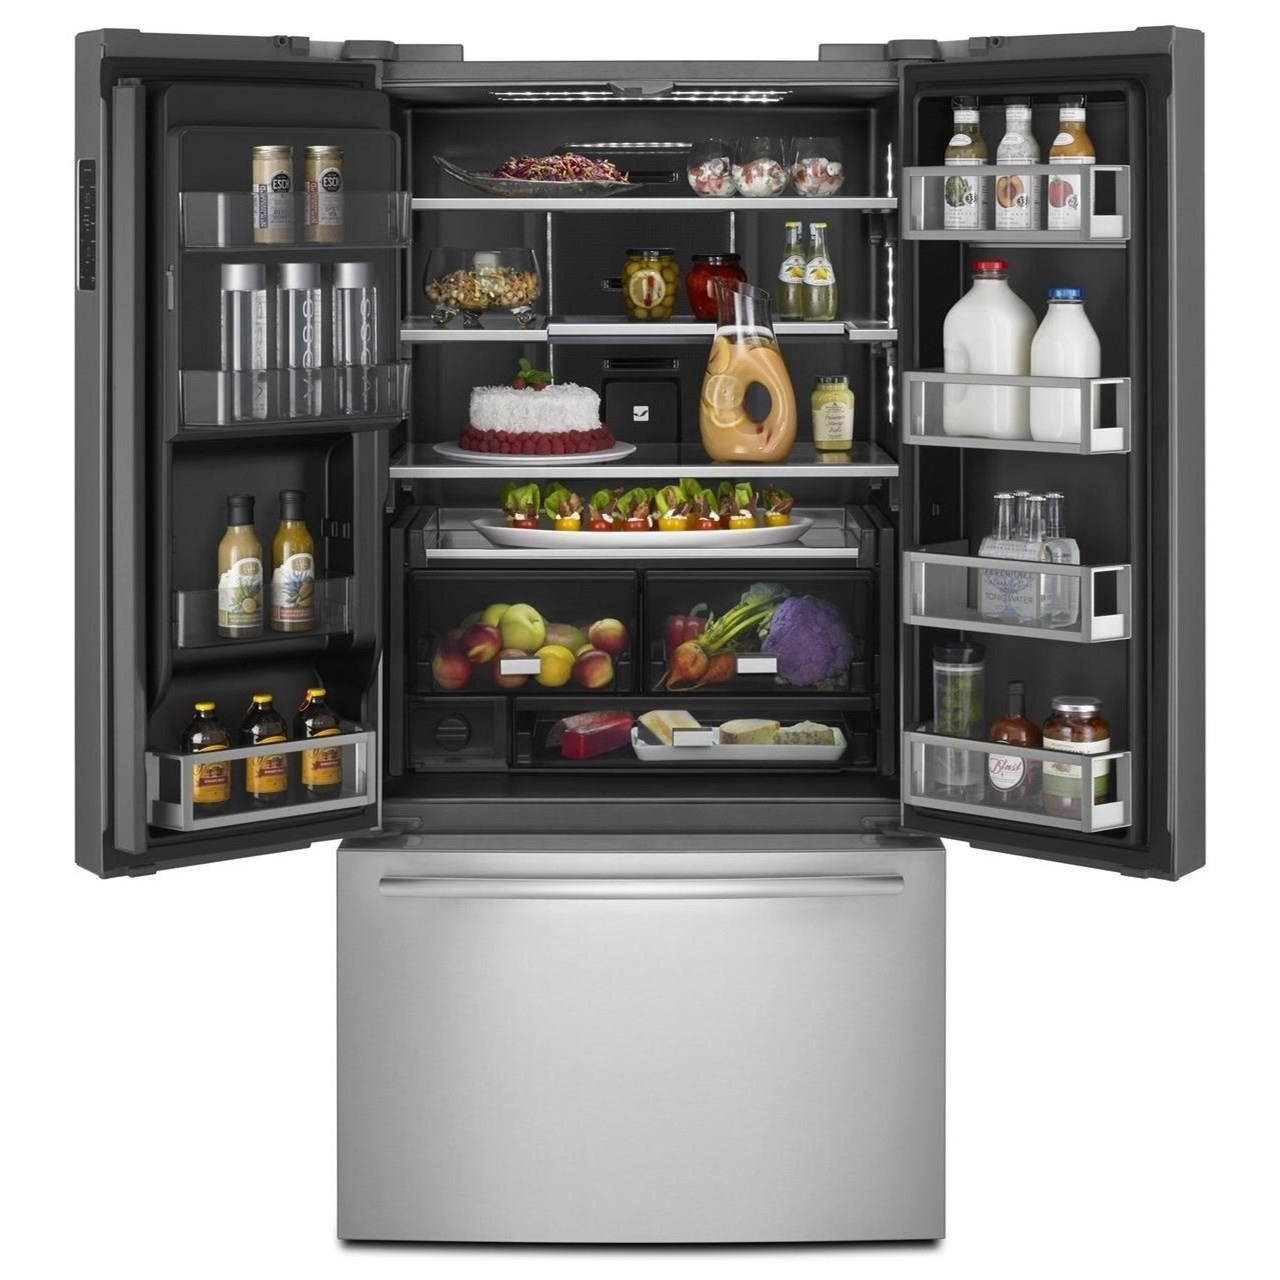 Jenn Air Jffcc72efs72 Counter Depth French Door Refrigerator With Obsidian Interior Furniture